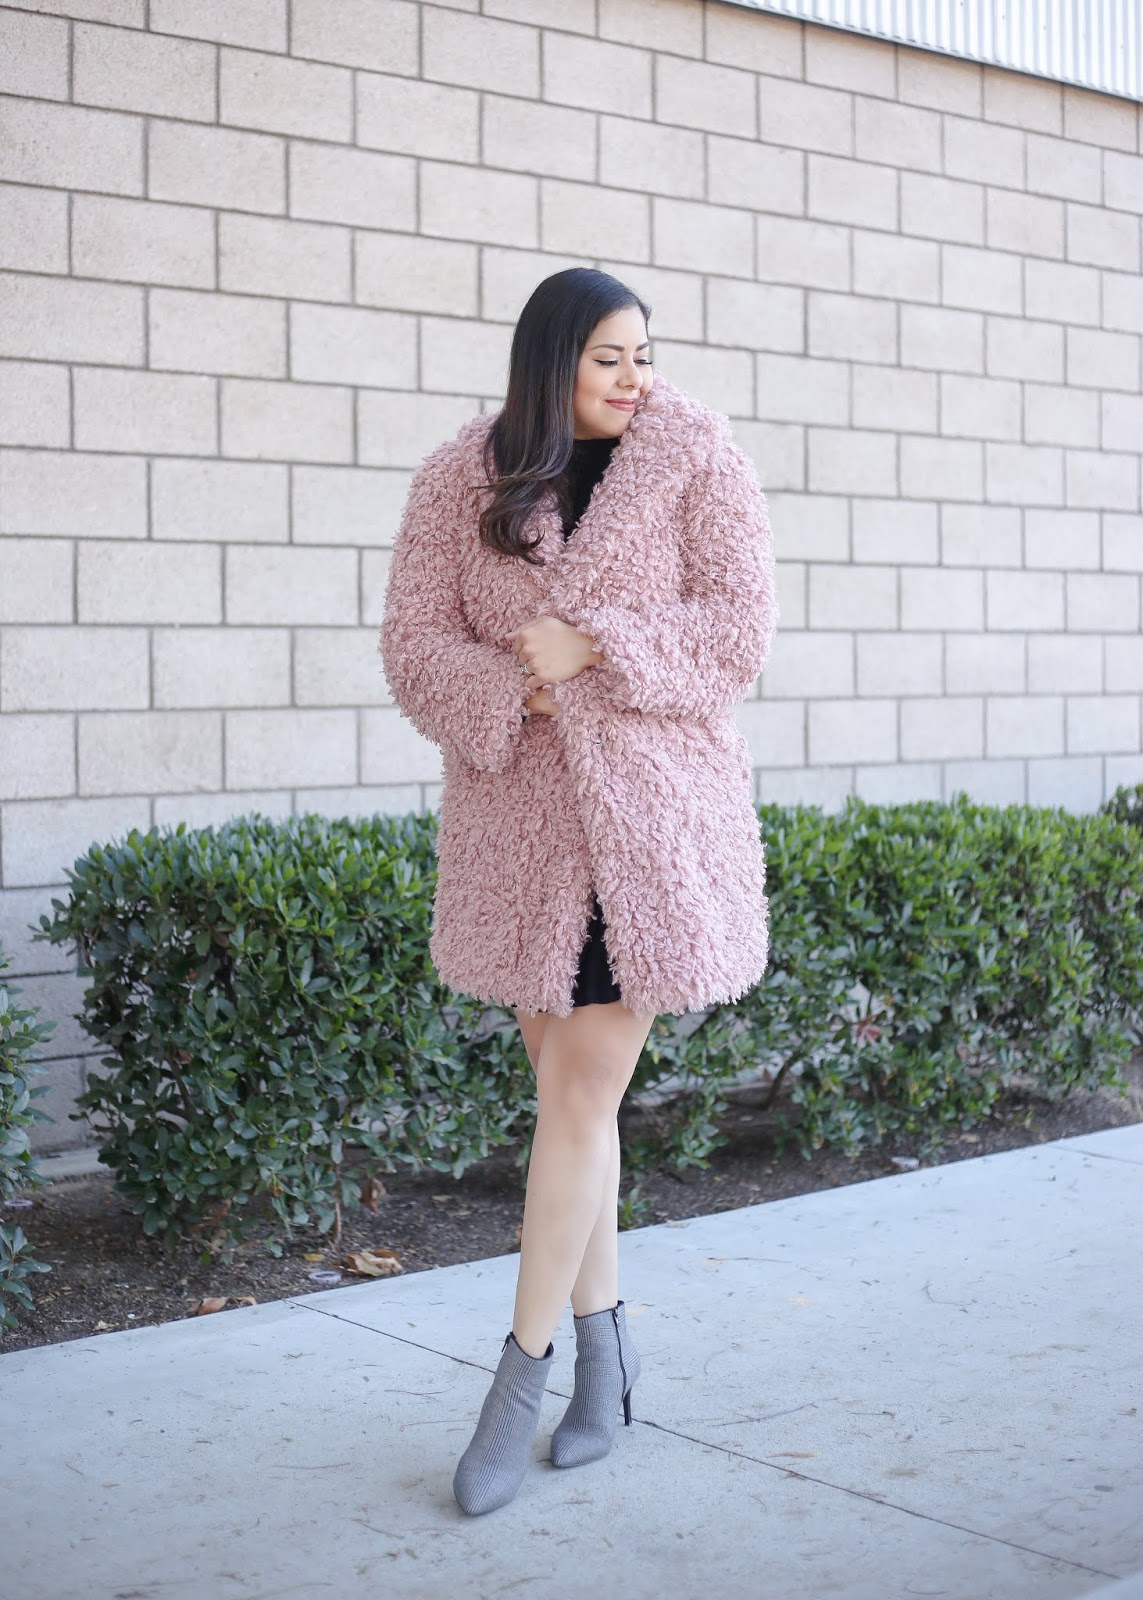 how to style a teddy bear coat 2019, cabi dandy boot